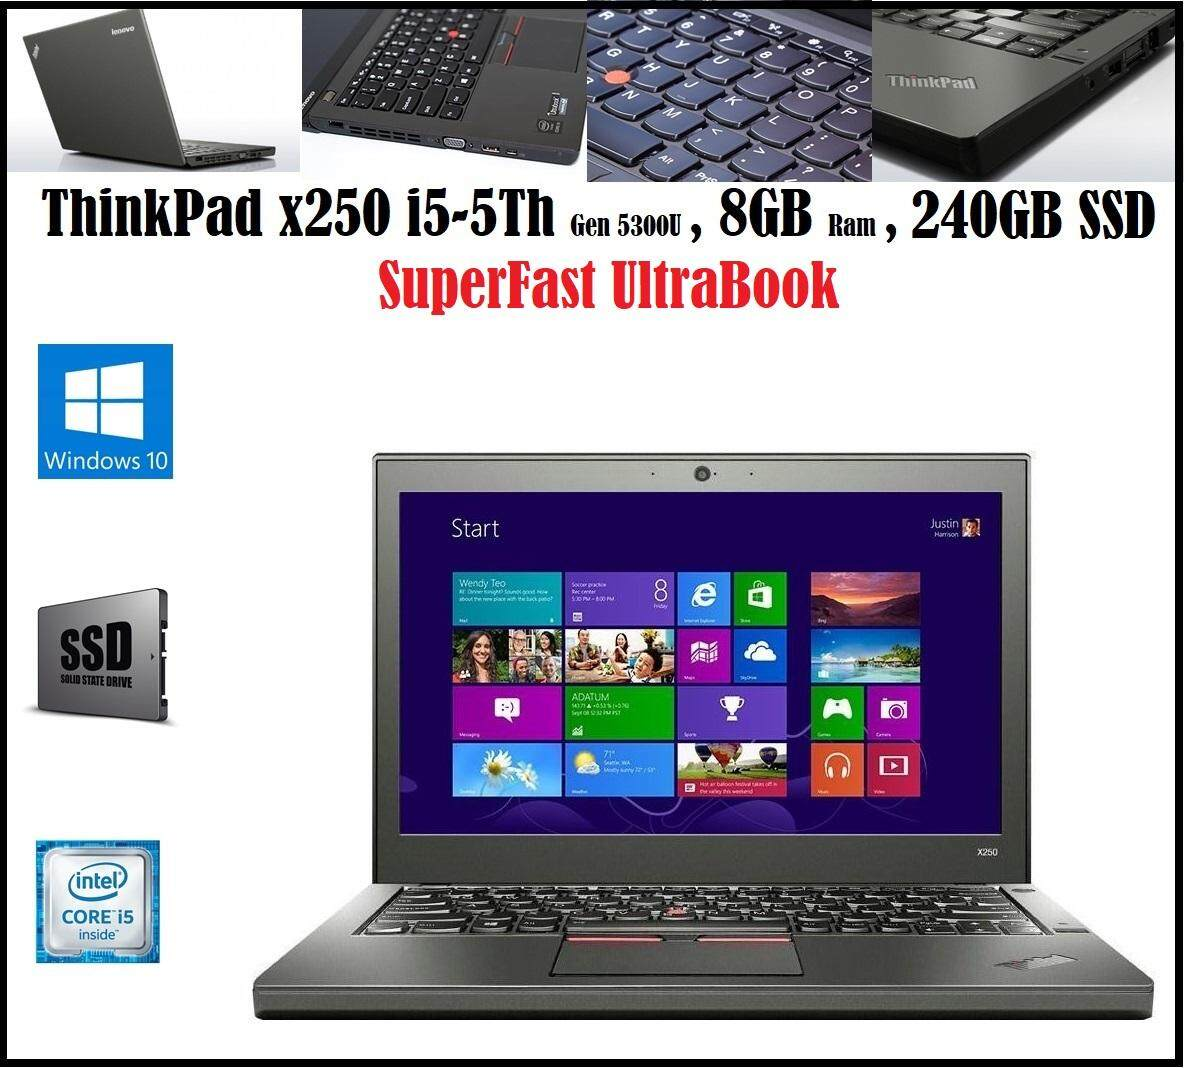 Lenovo ThinkPad X250 12.5-Inch Laptop (Intel Core i5 2.3 GHz, 8 GB RAM, 240 GB SSD, Windows 8.1 Malaysia